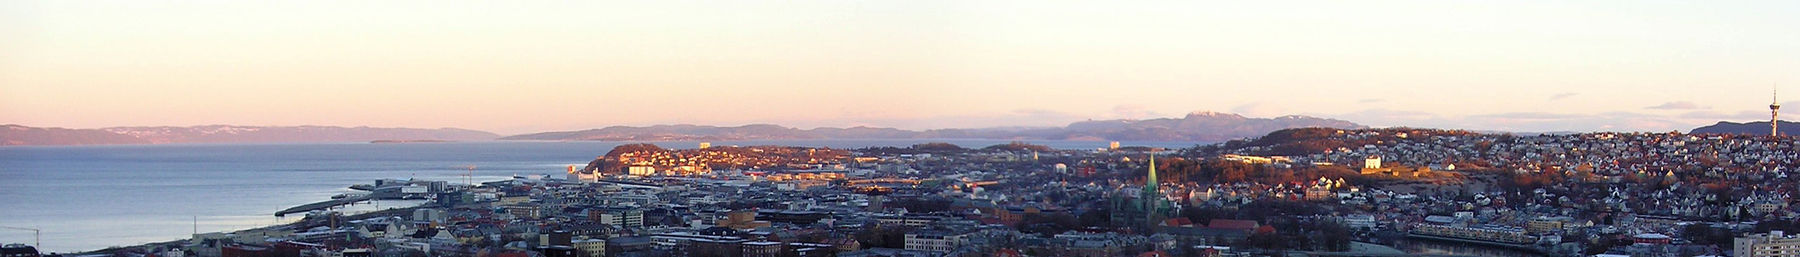 Trondheim banner Panorama with coast and city.jpg